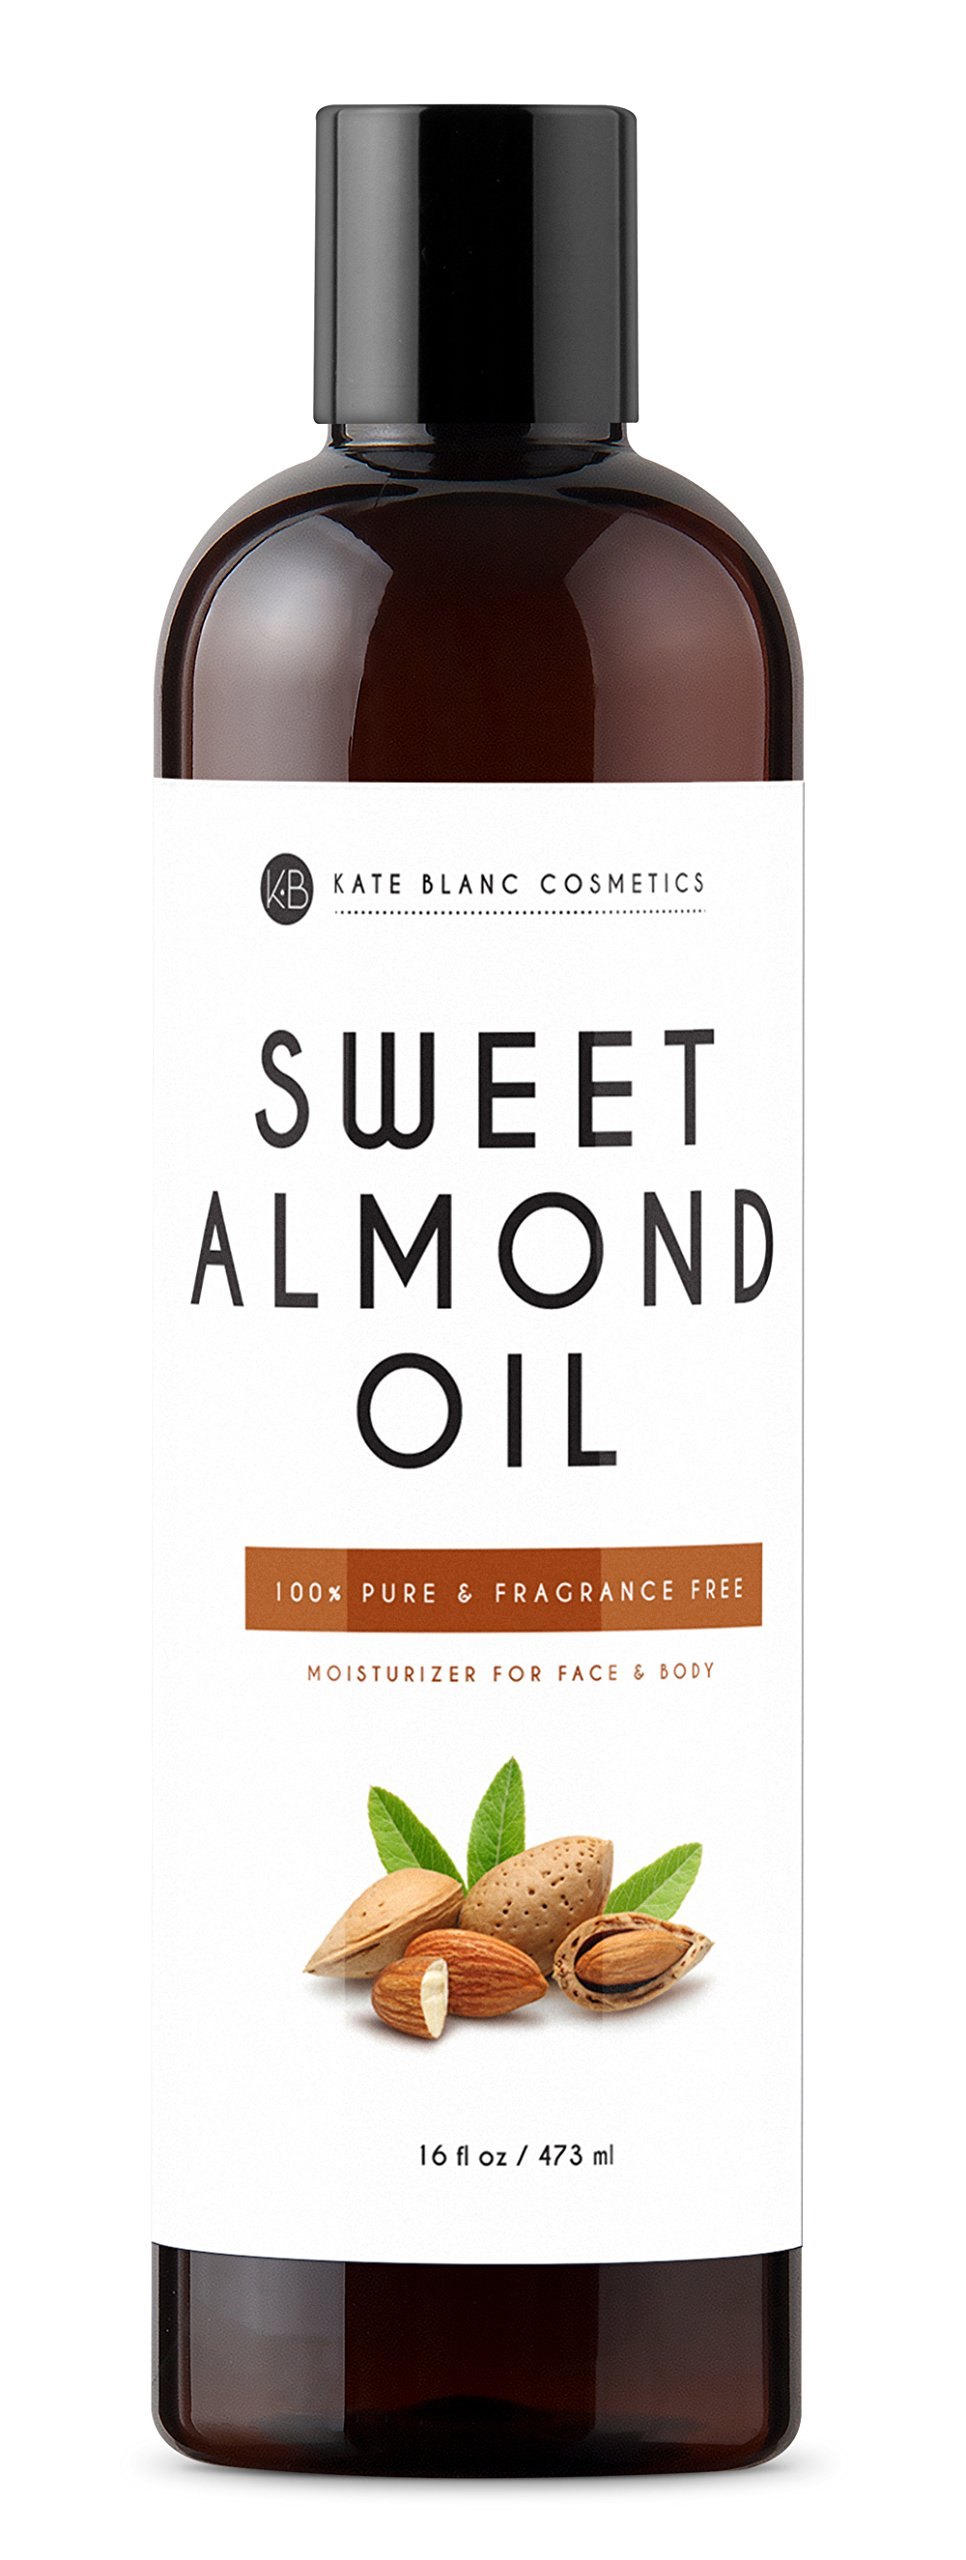 Sweet Almond Oil 16oz by Kate Blanc. 100% Pure, Cold Pressed, Hexane Free. Ideal for Face, Skin, Hair. Great as Massage Oil, Aromatherapy, and Carrier Oil. Smoother Skin, Softer Hair. 1-Year Guarantee by Kate Blanc Cosmetics